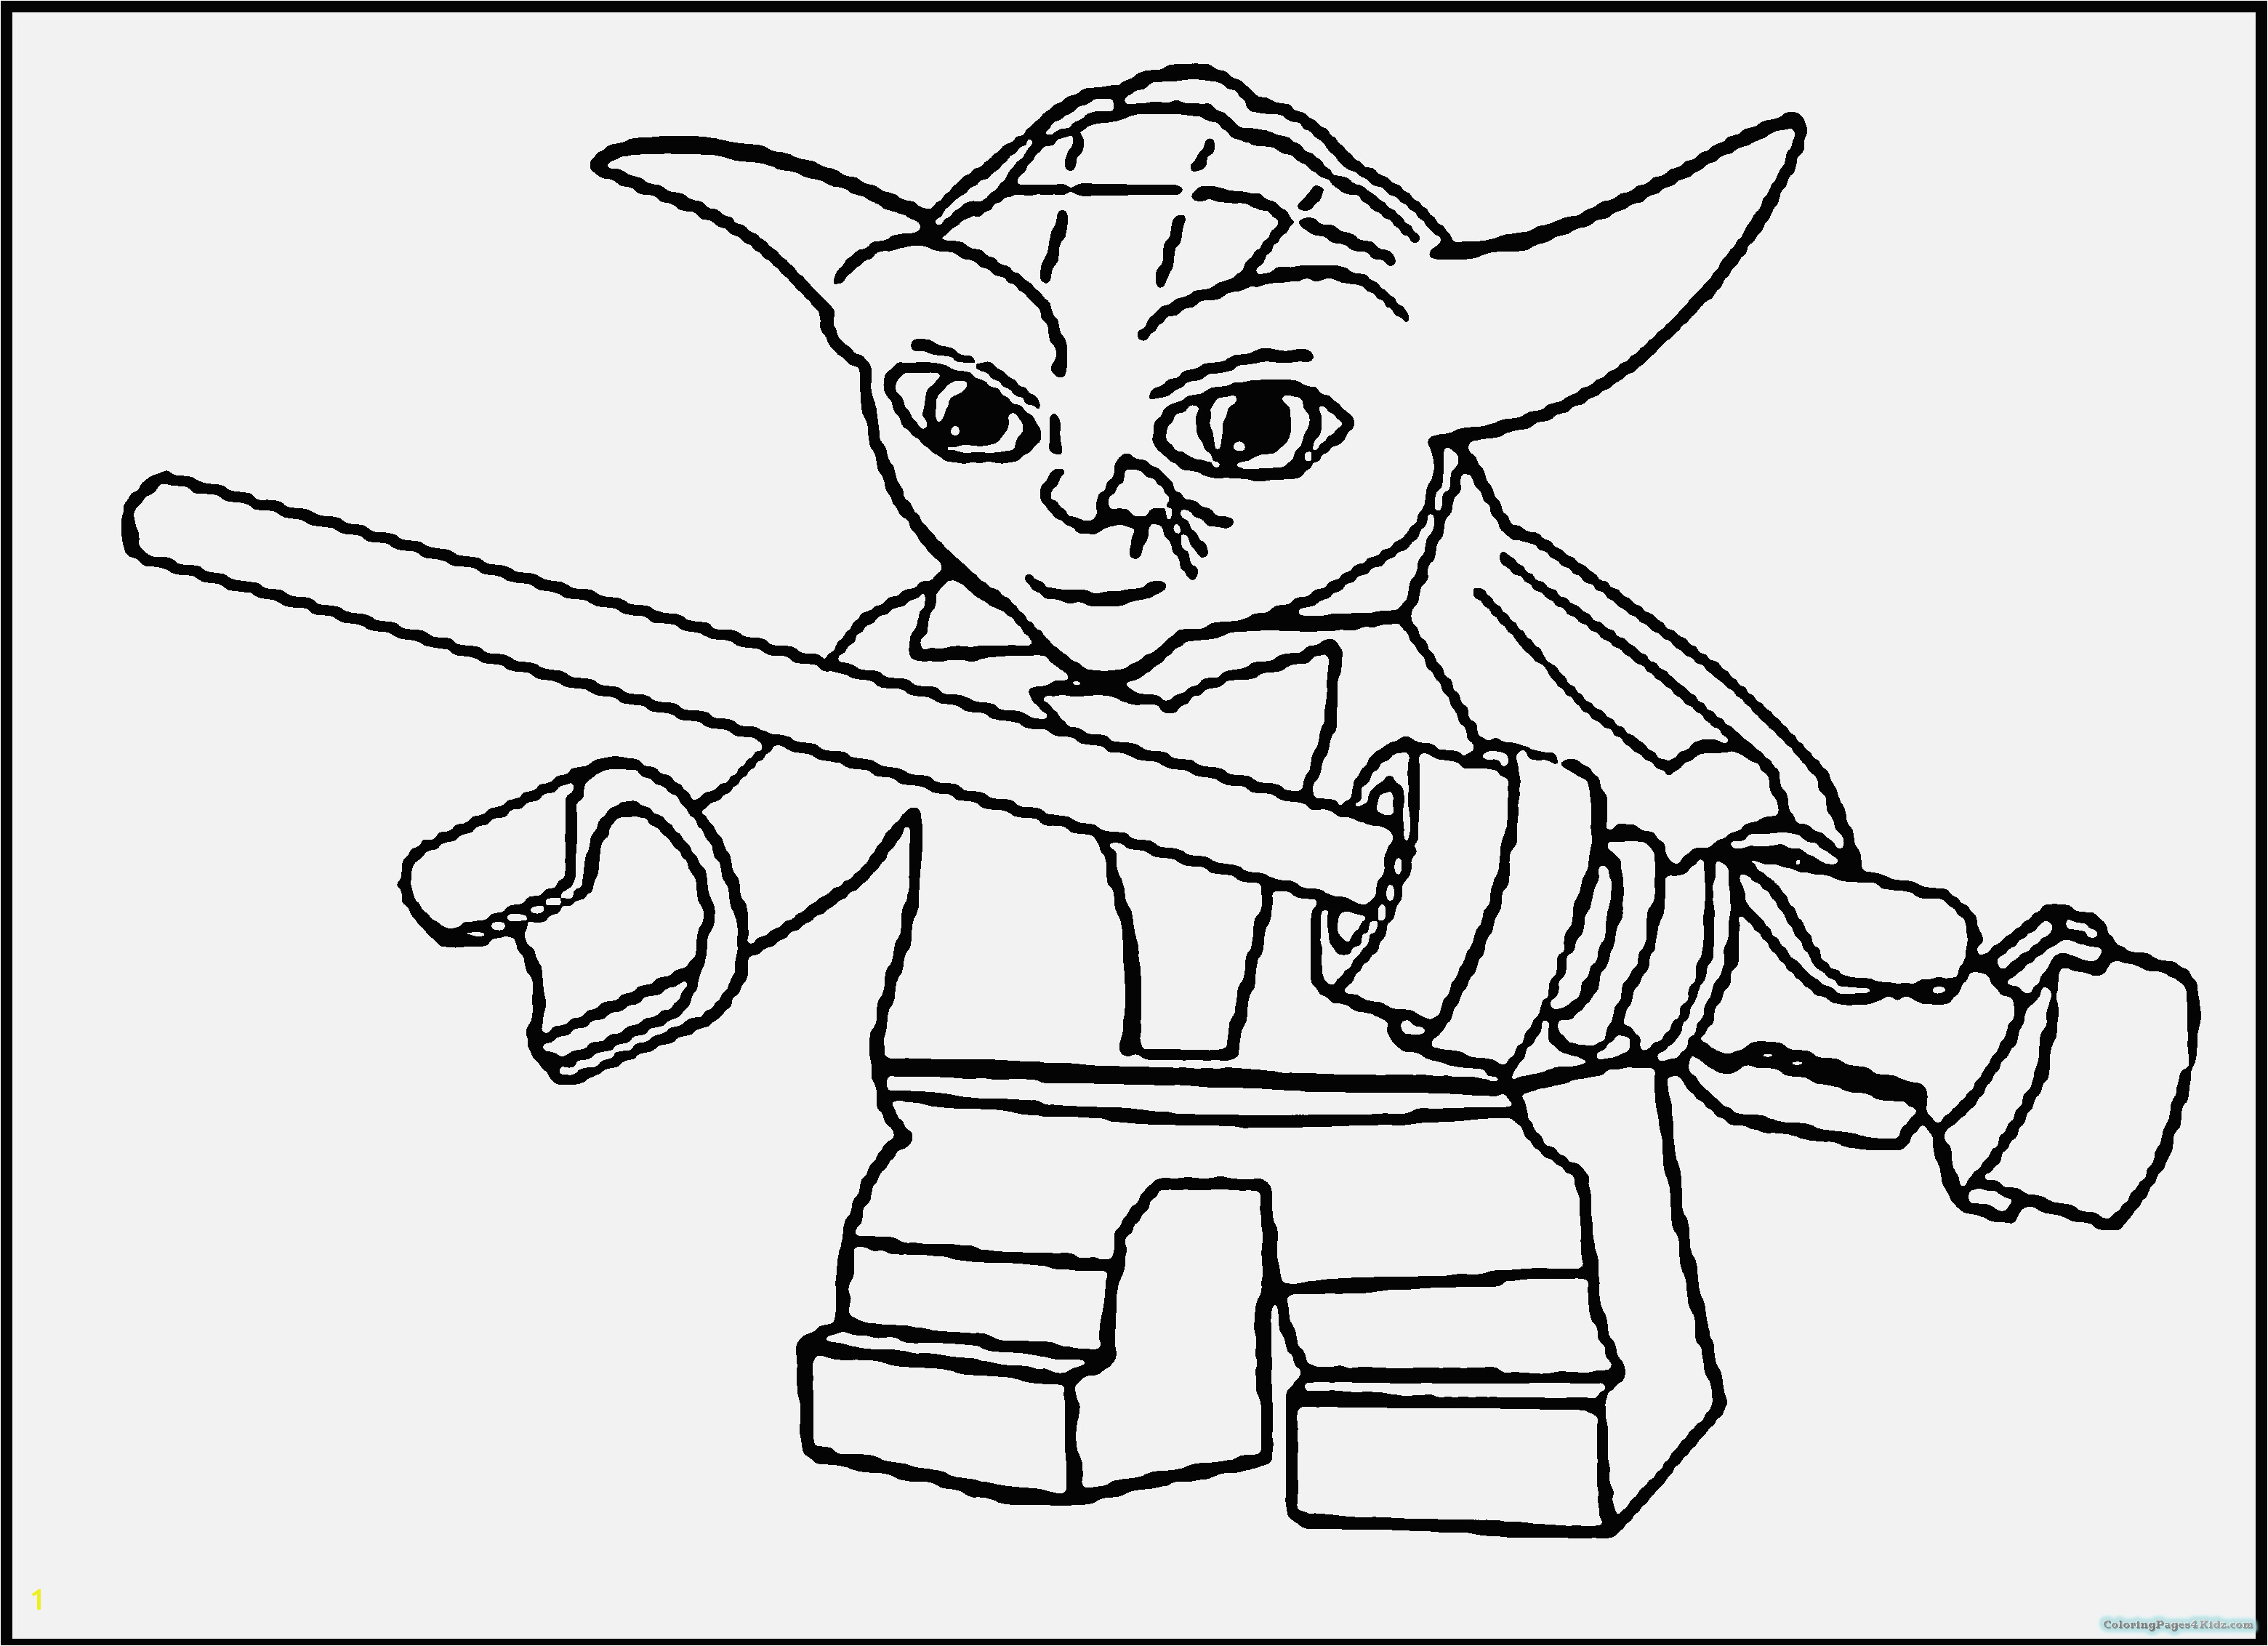 Star Wars Coloring Book Printable How to Draw Star Wars Coloring Book Image at Coloring Page